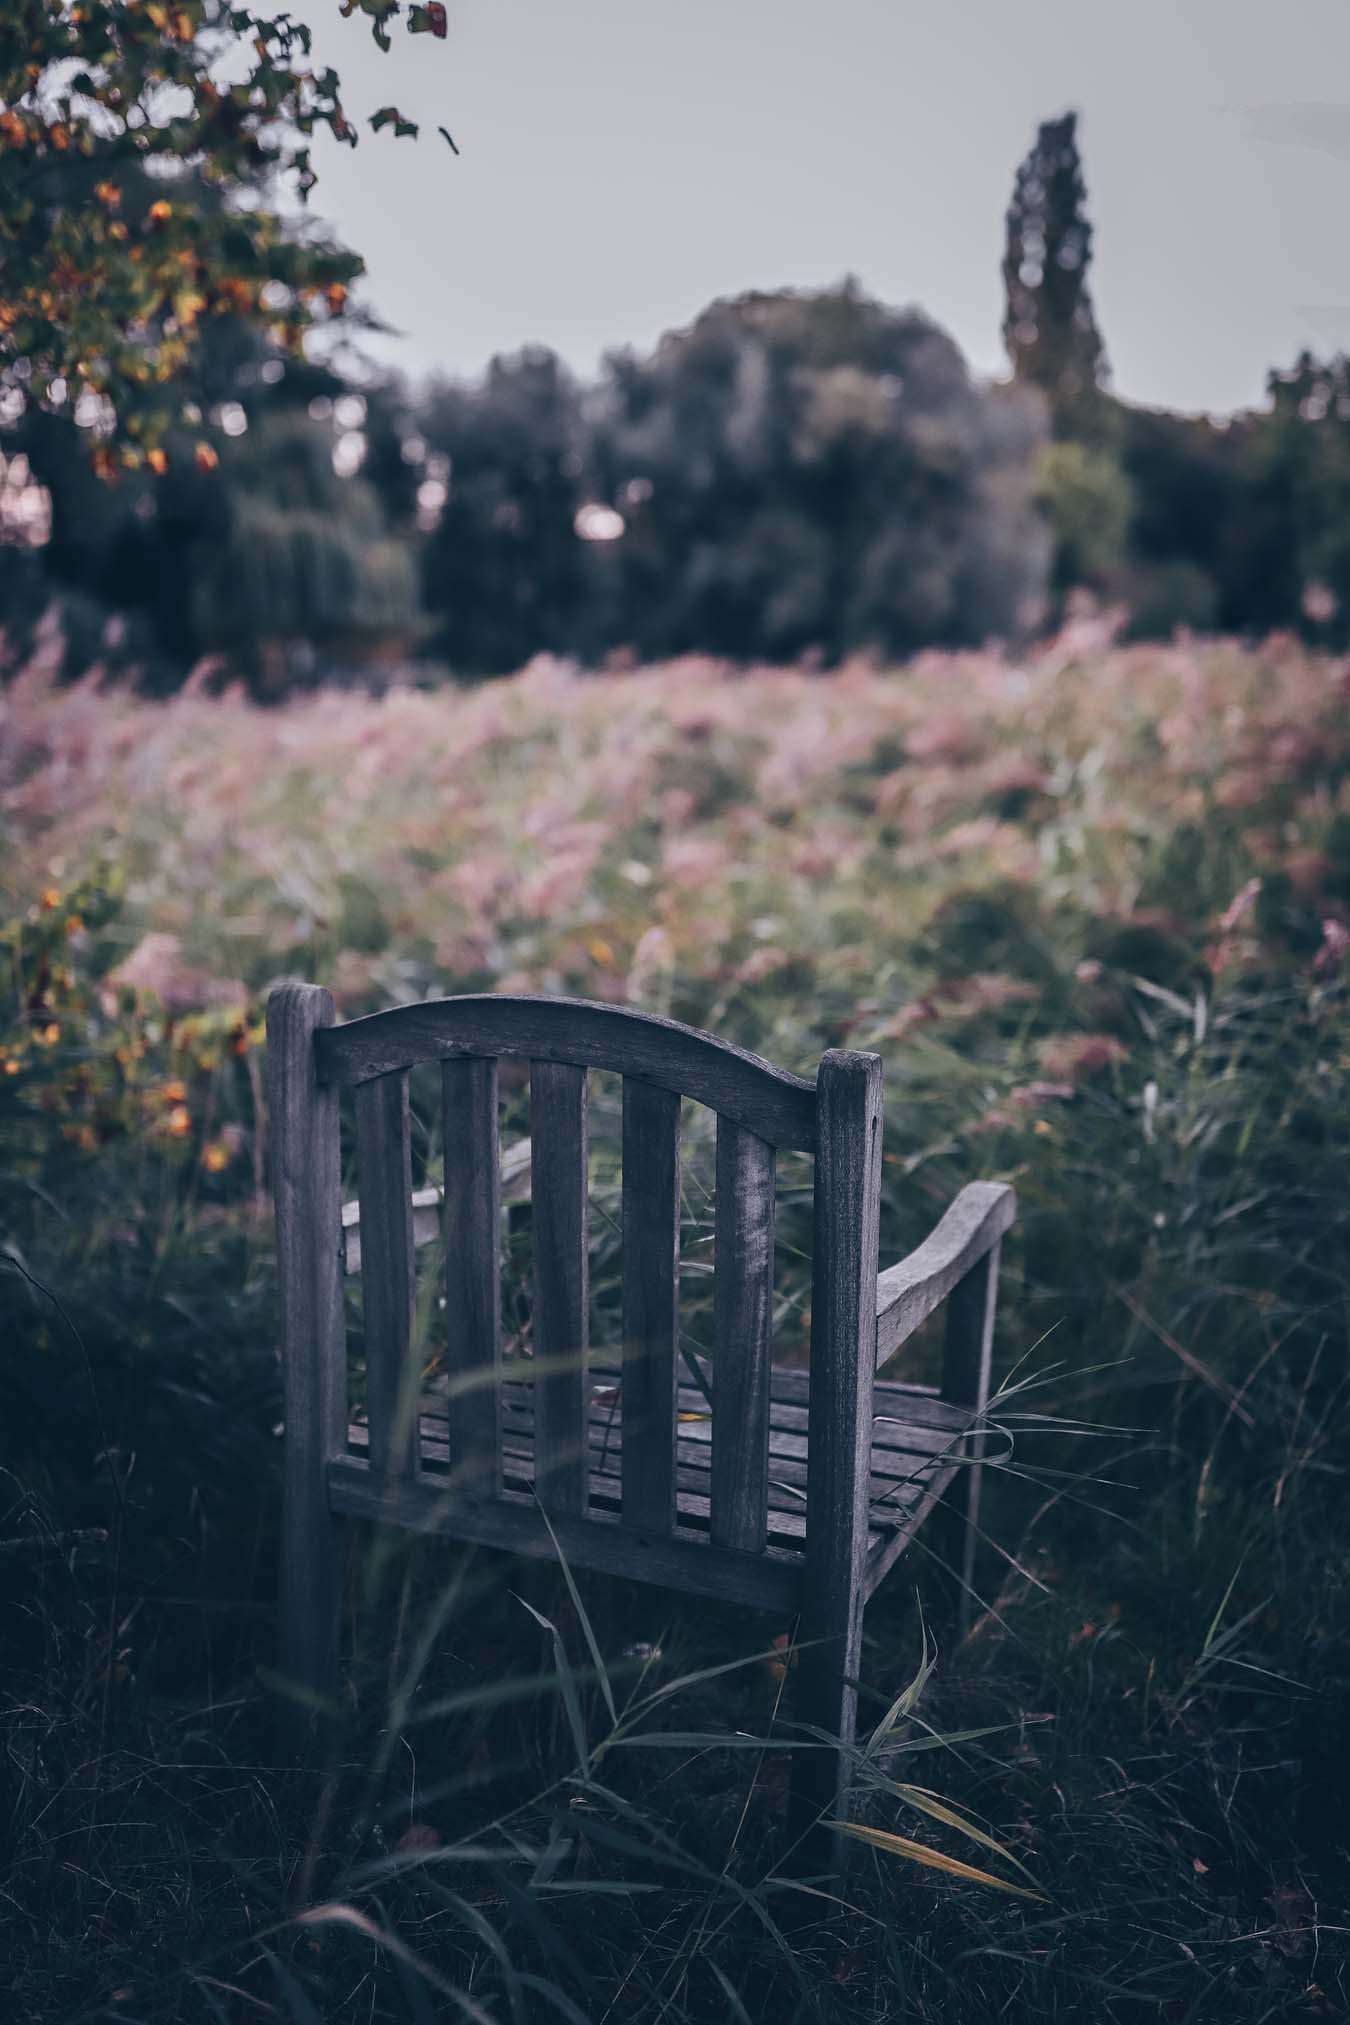 An old chair is in a wild garden.